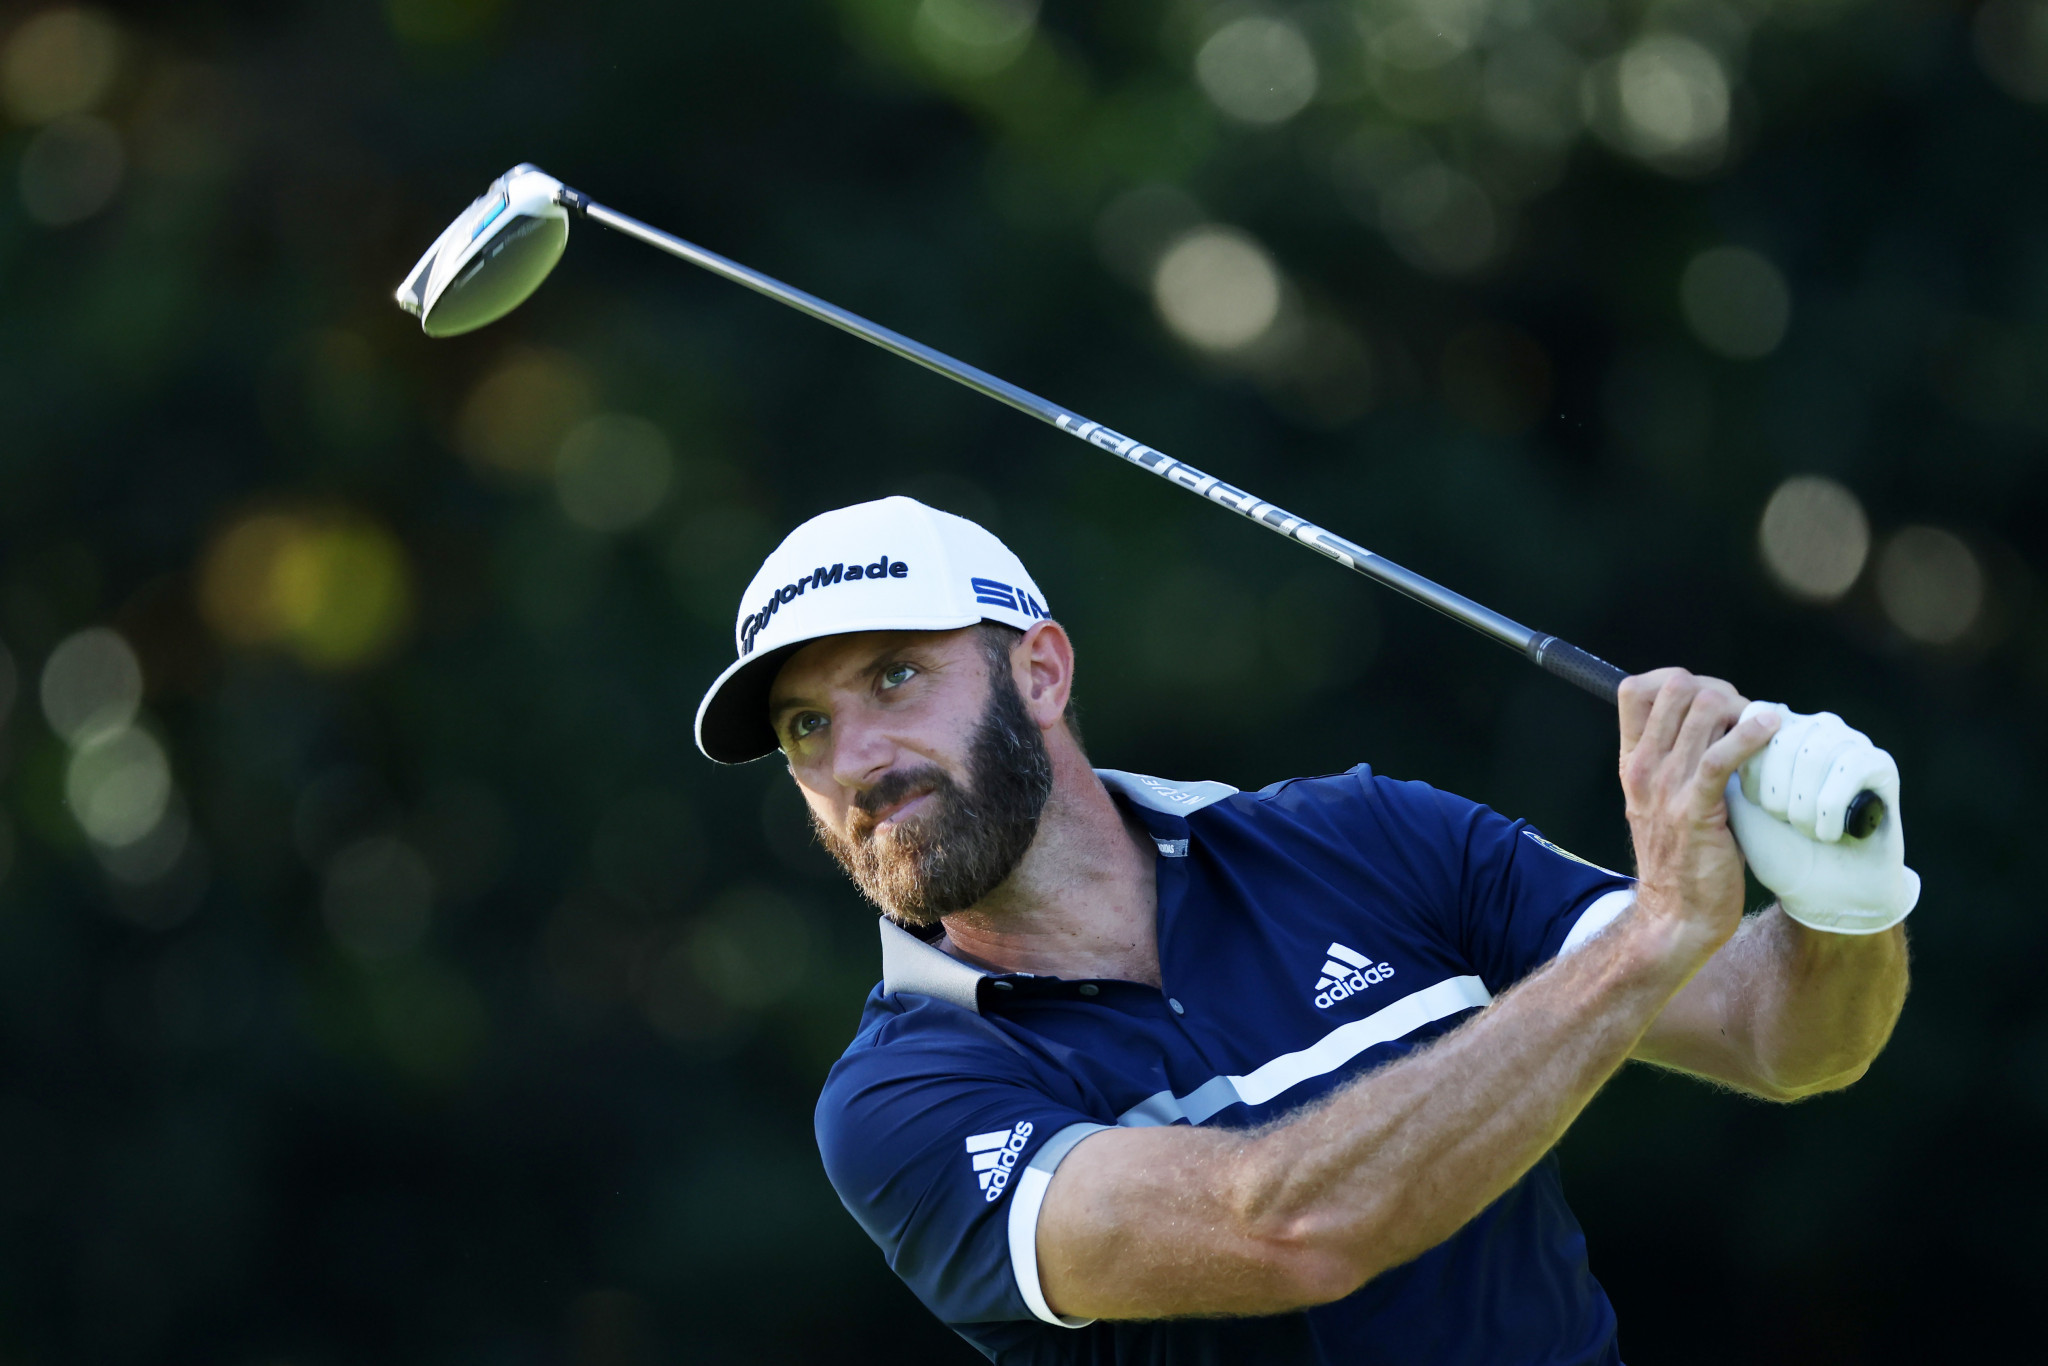 Four-way tie for the lead after day two of The Masters